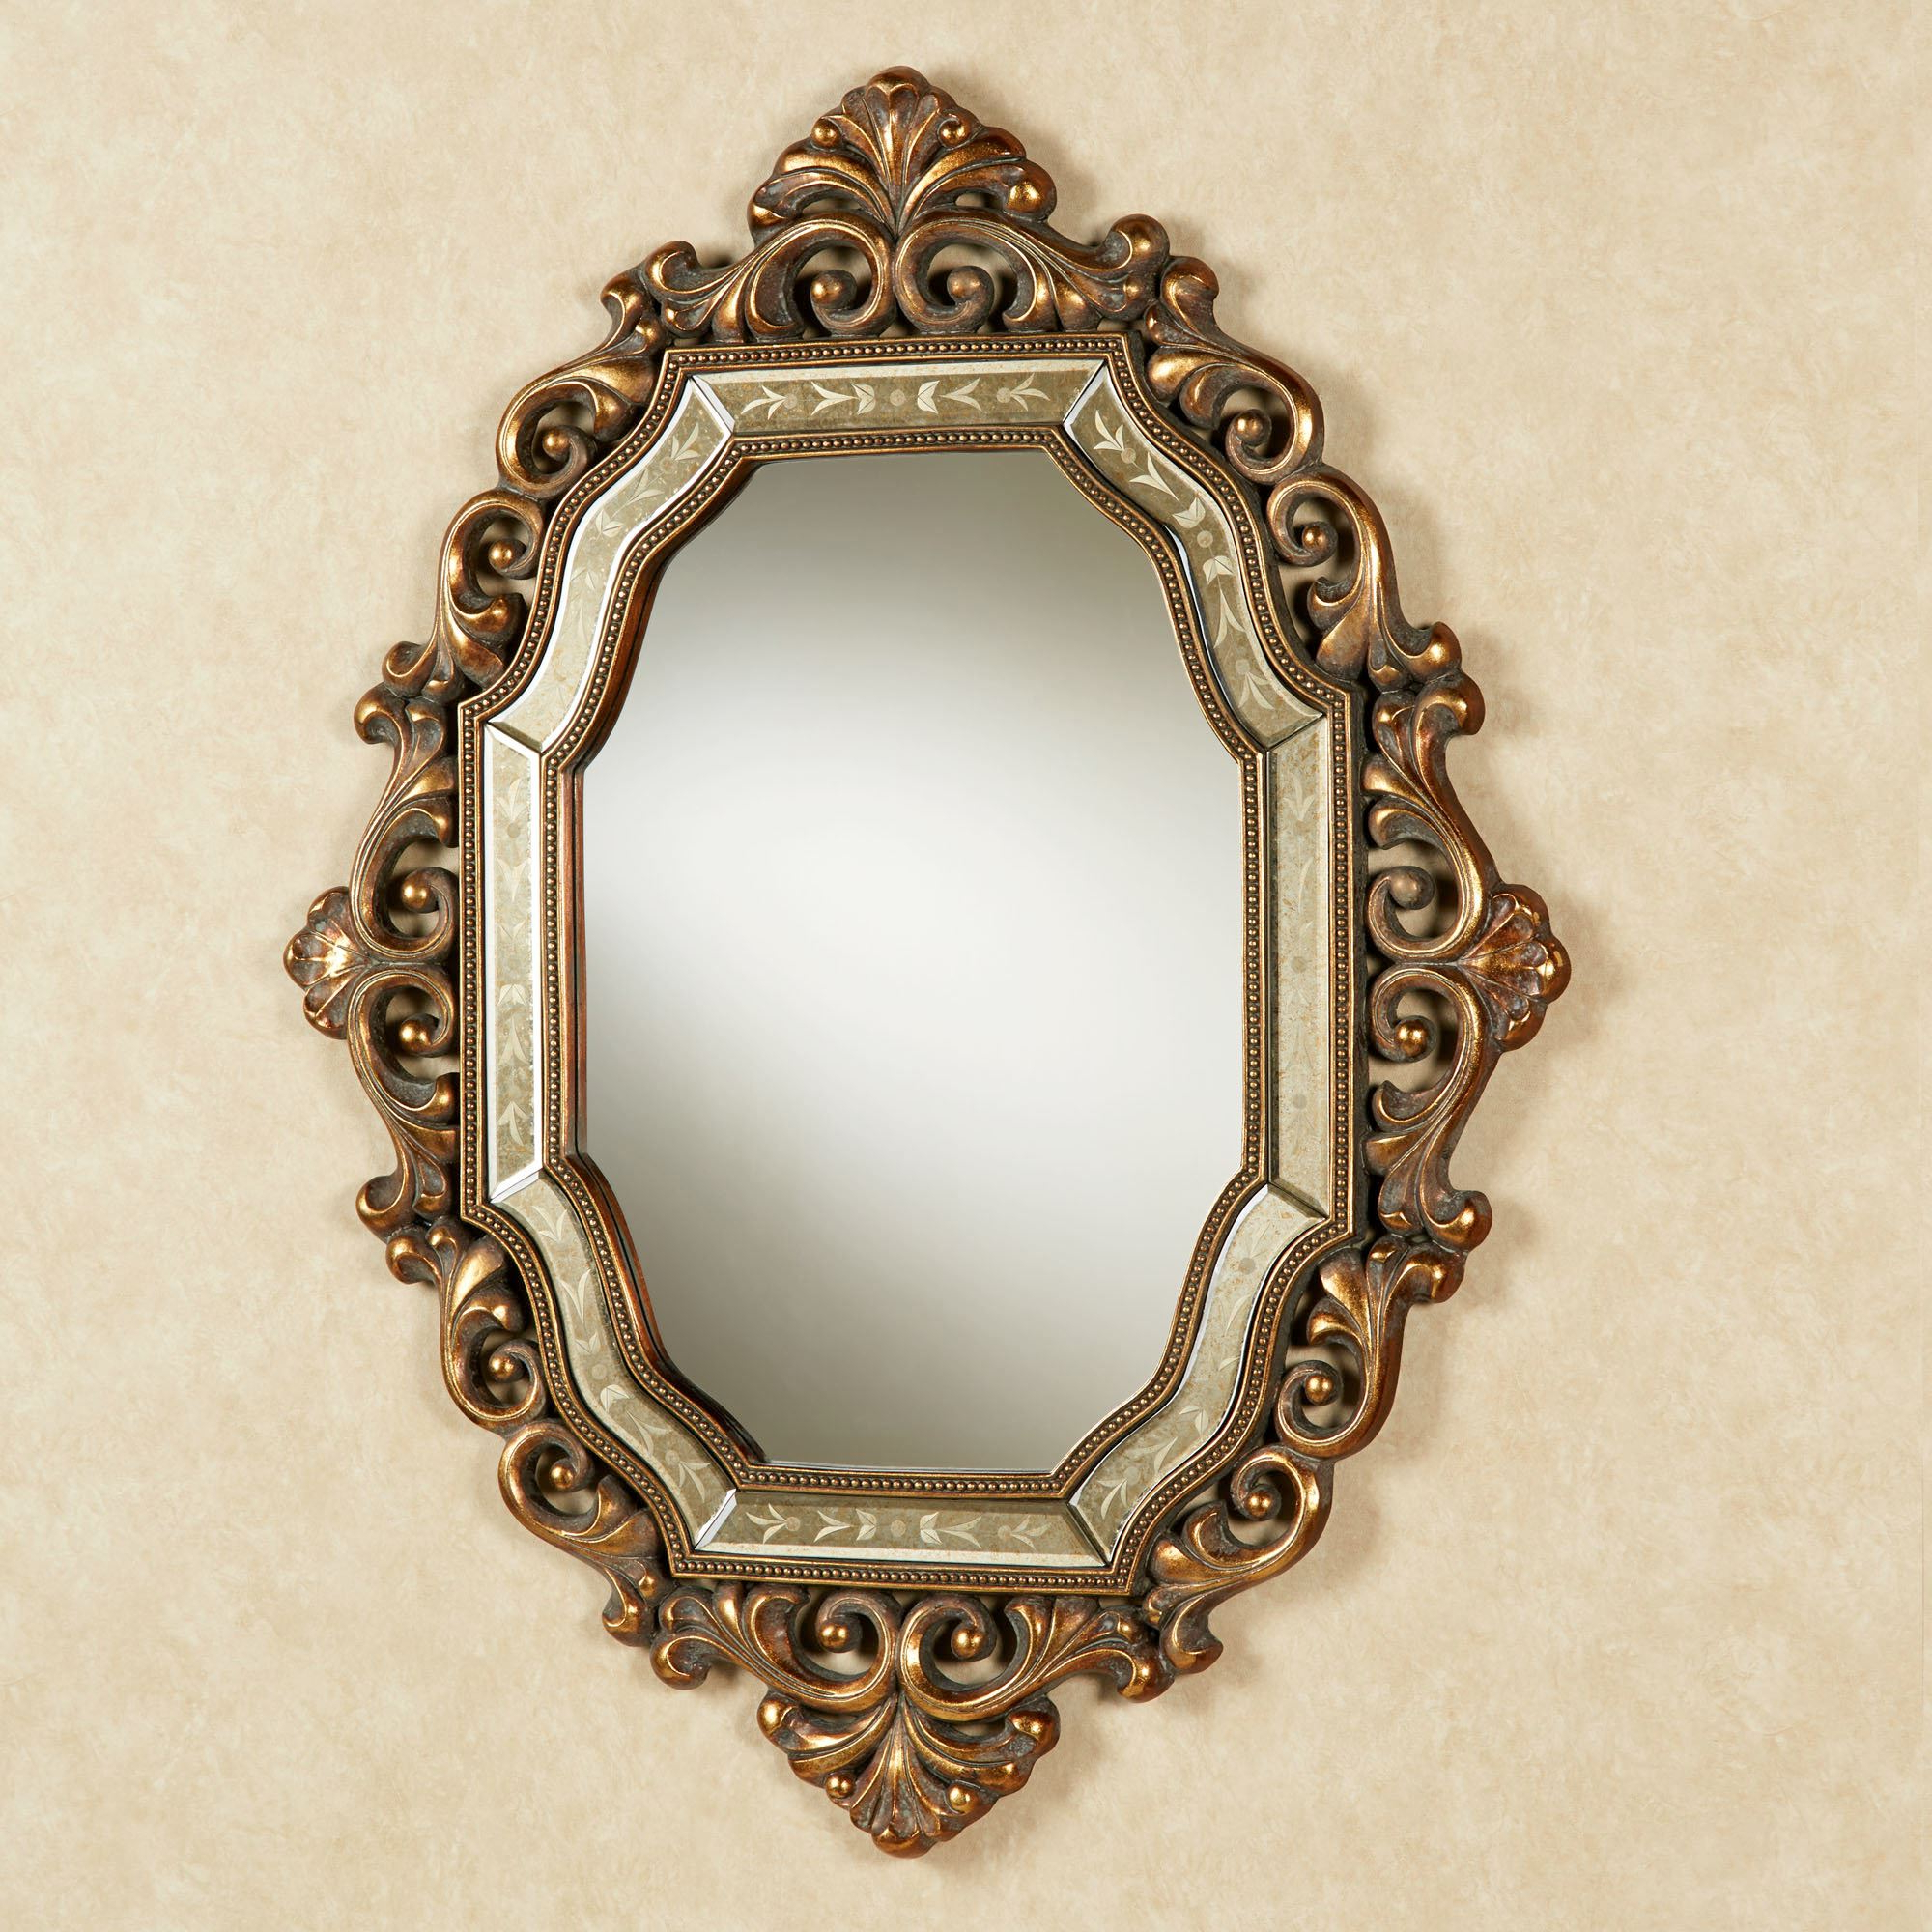 Well Known Verena Old World Wall Mirror With Antique Gold Wall Mirrors (Gallery 4 of 20)